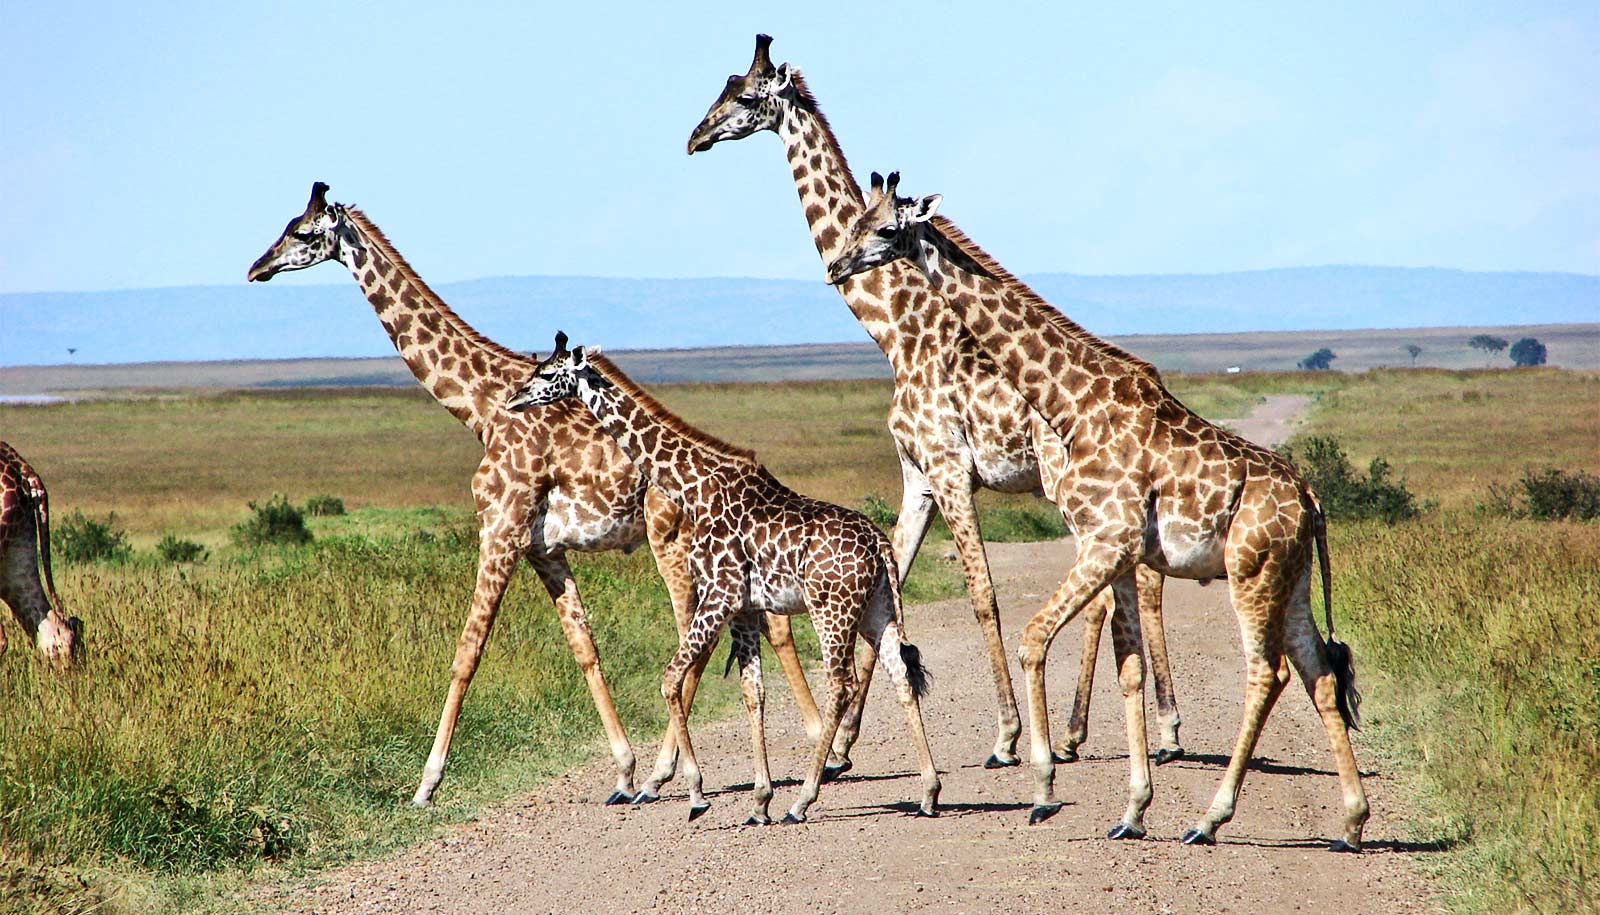 Babies change where groups of giraffes hang out